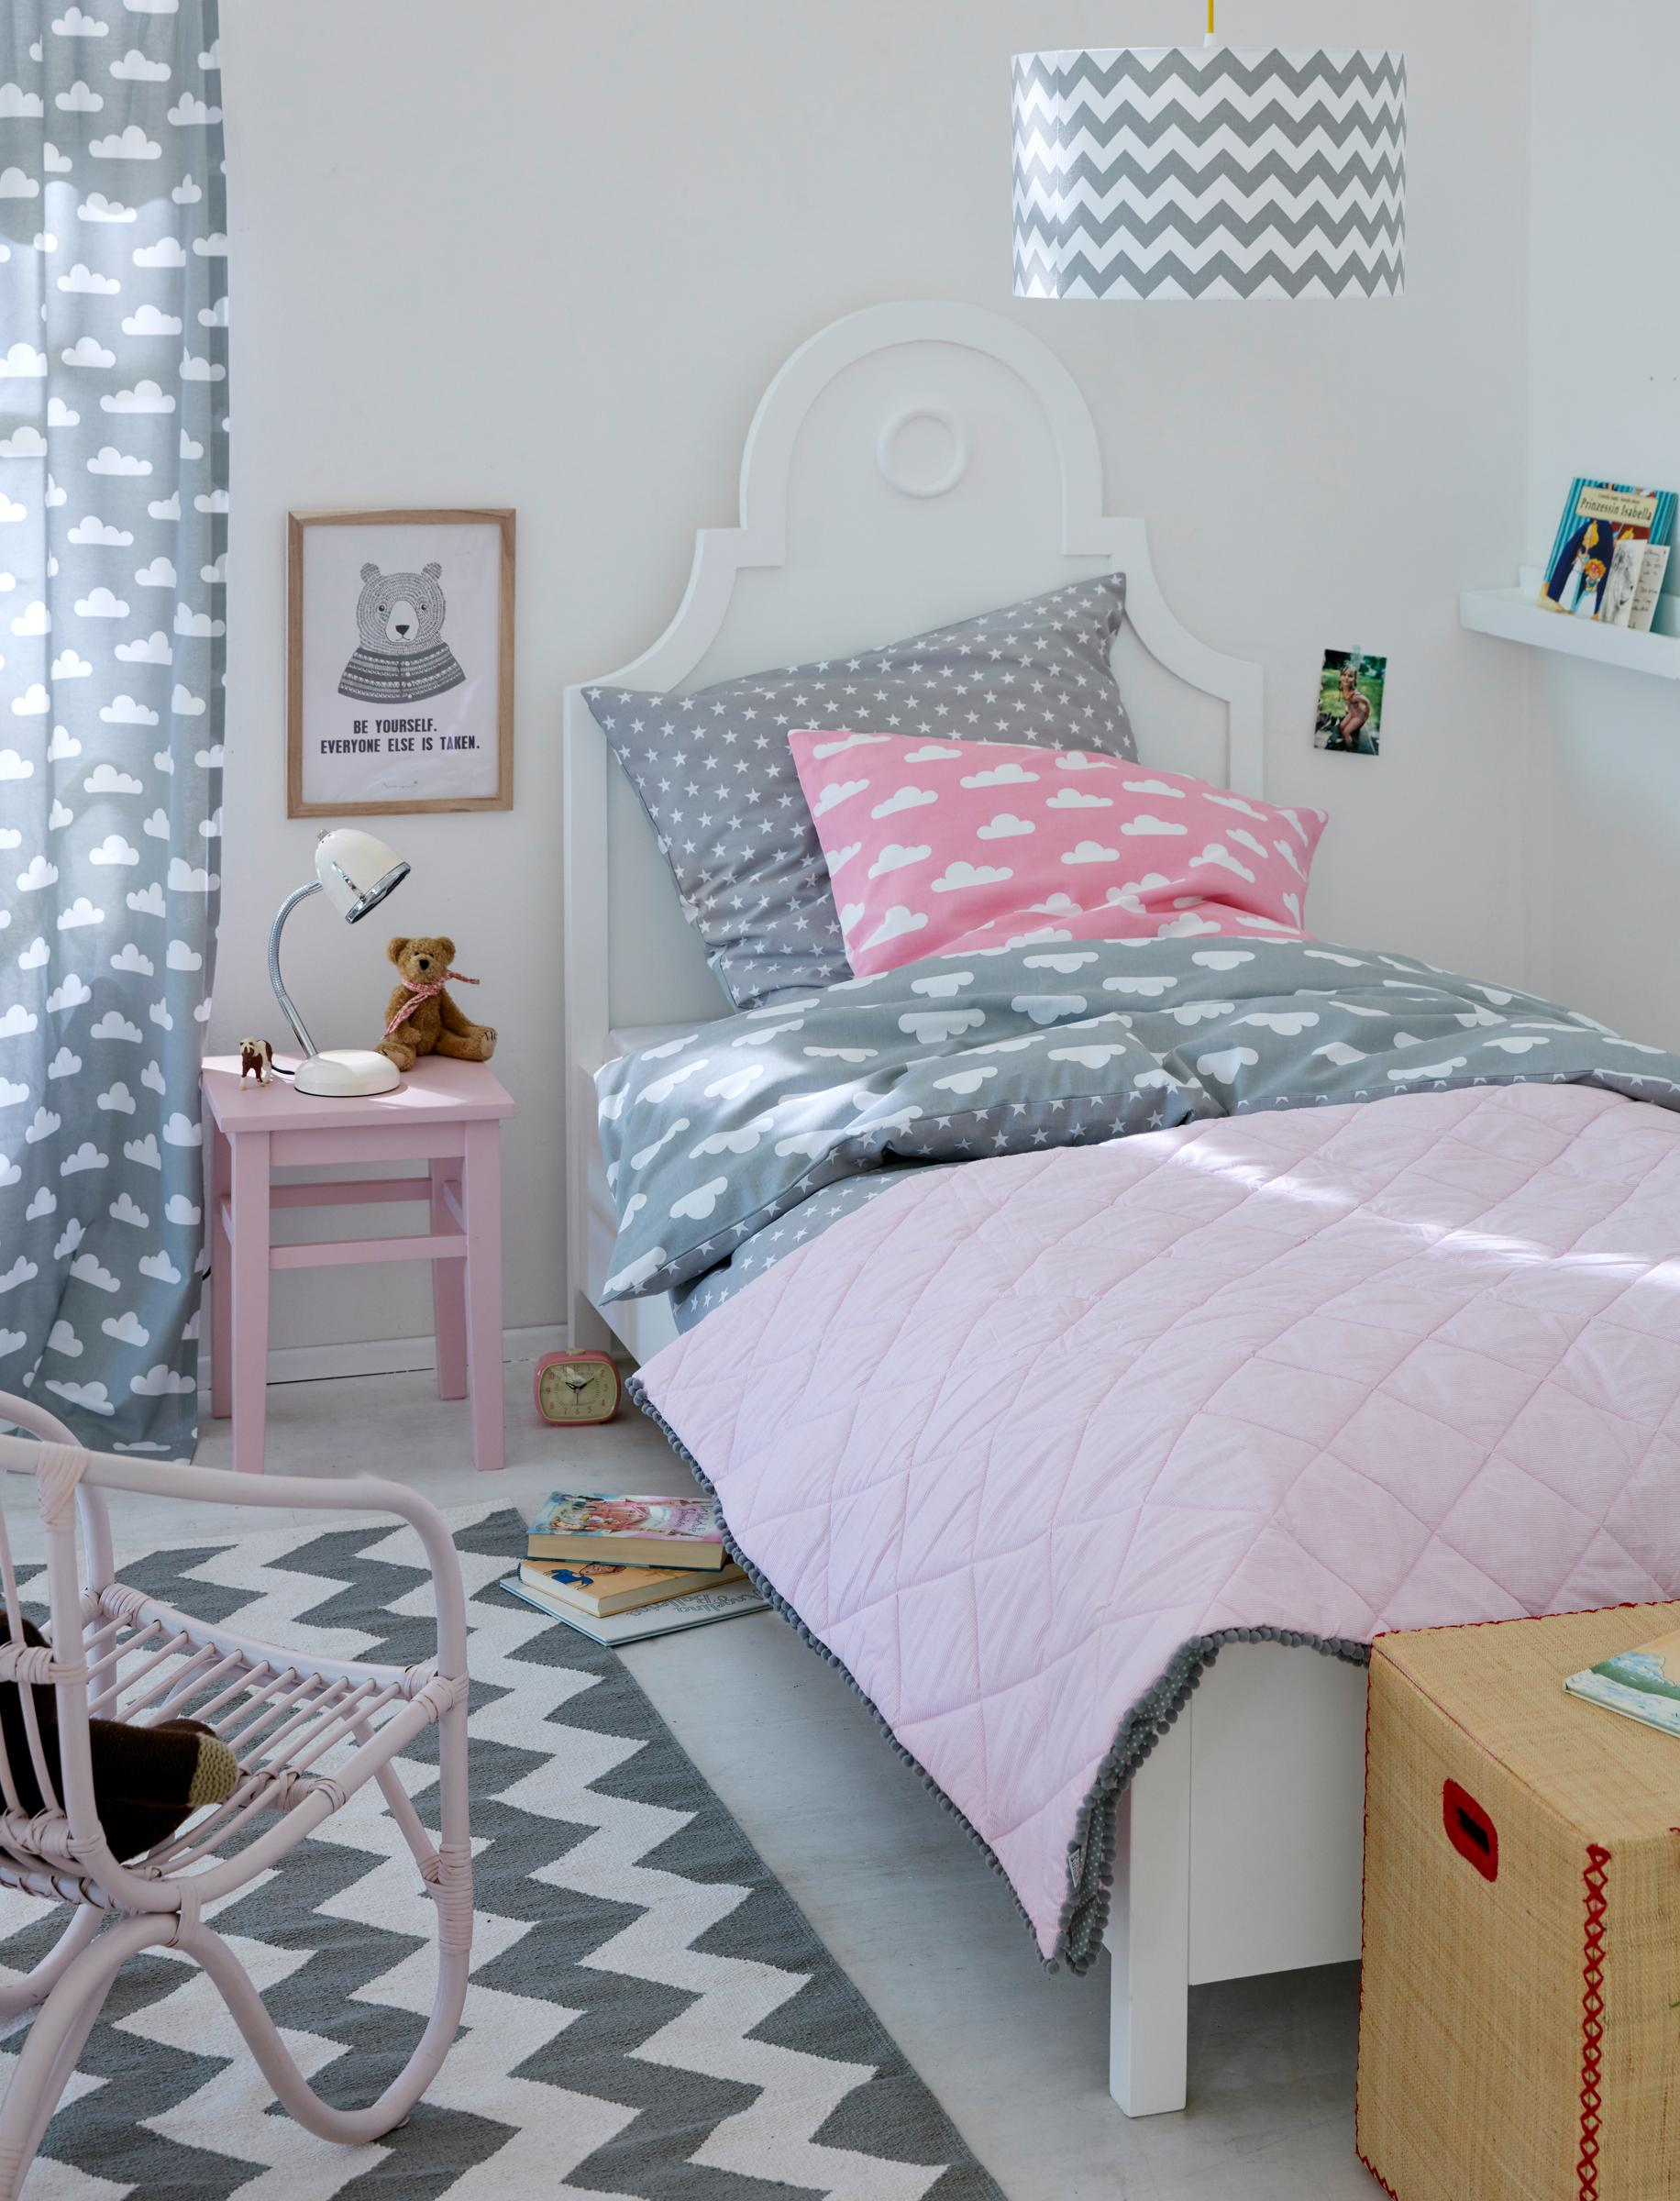 kinderzimmer in grau rosa kinderbett m dchenzimmer. Black Bedroom Furniture Sets. Home Design Ideas